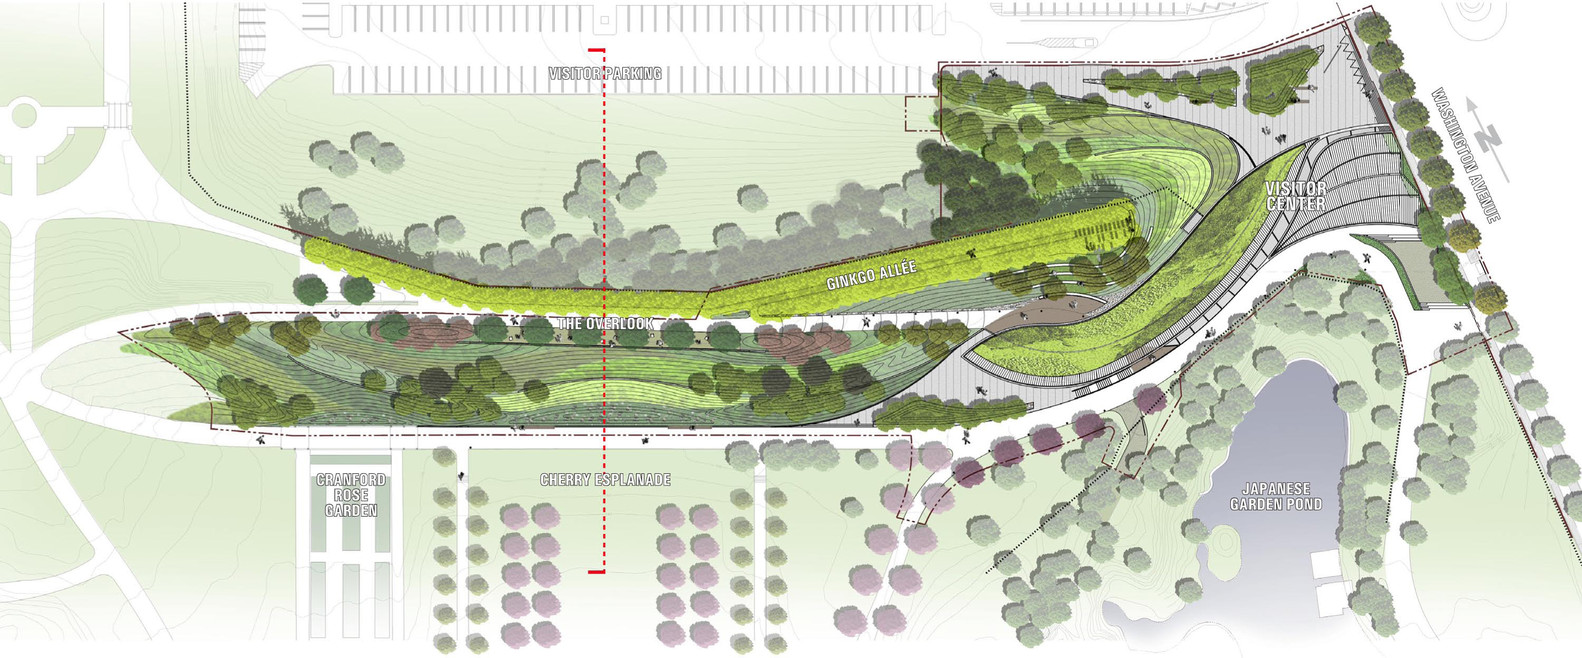 Brooklyn Botanic Garden Visitor Center,Site Plan